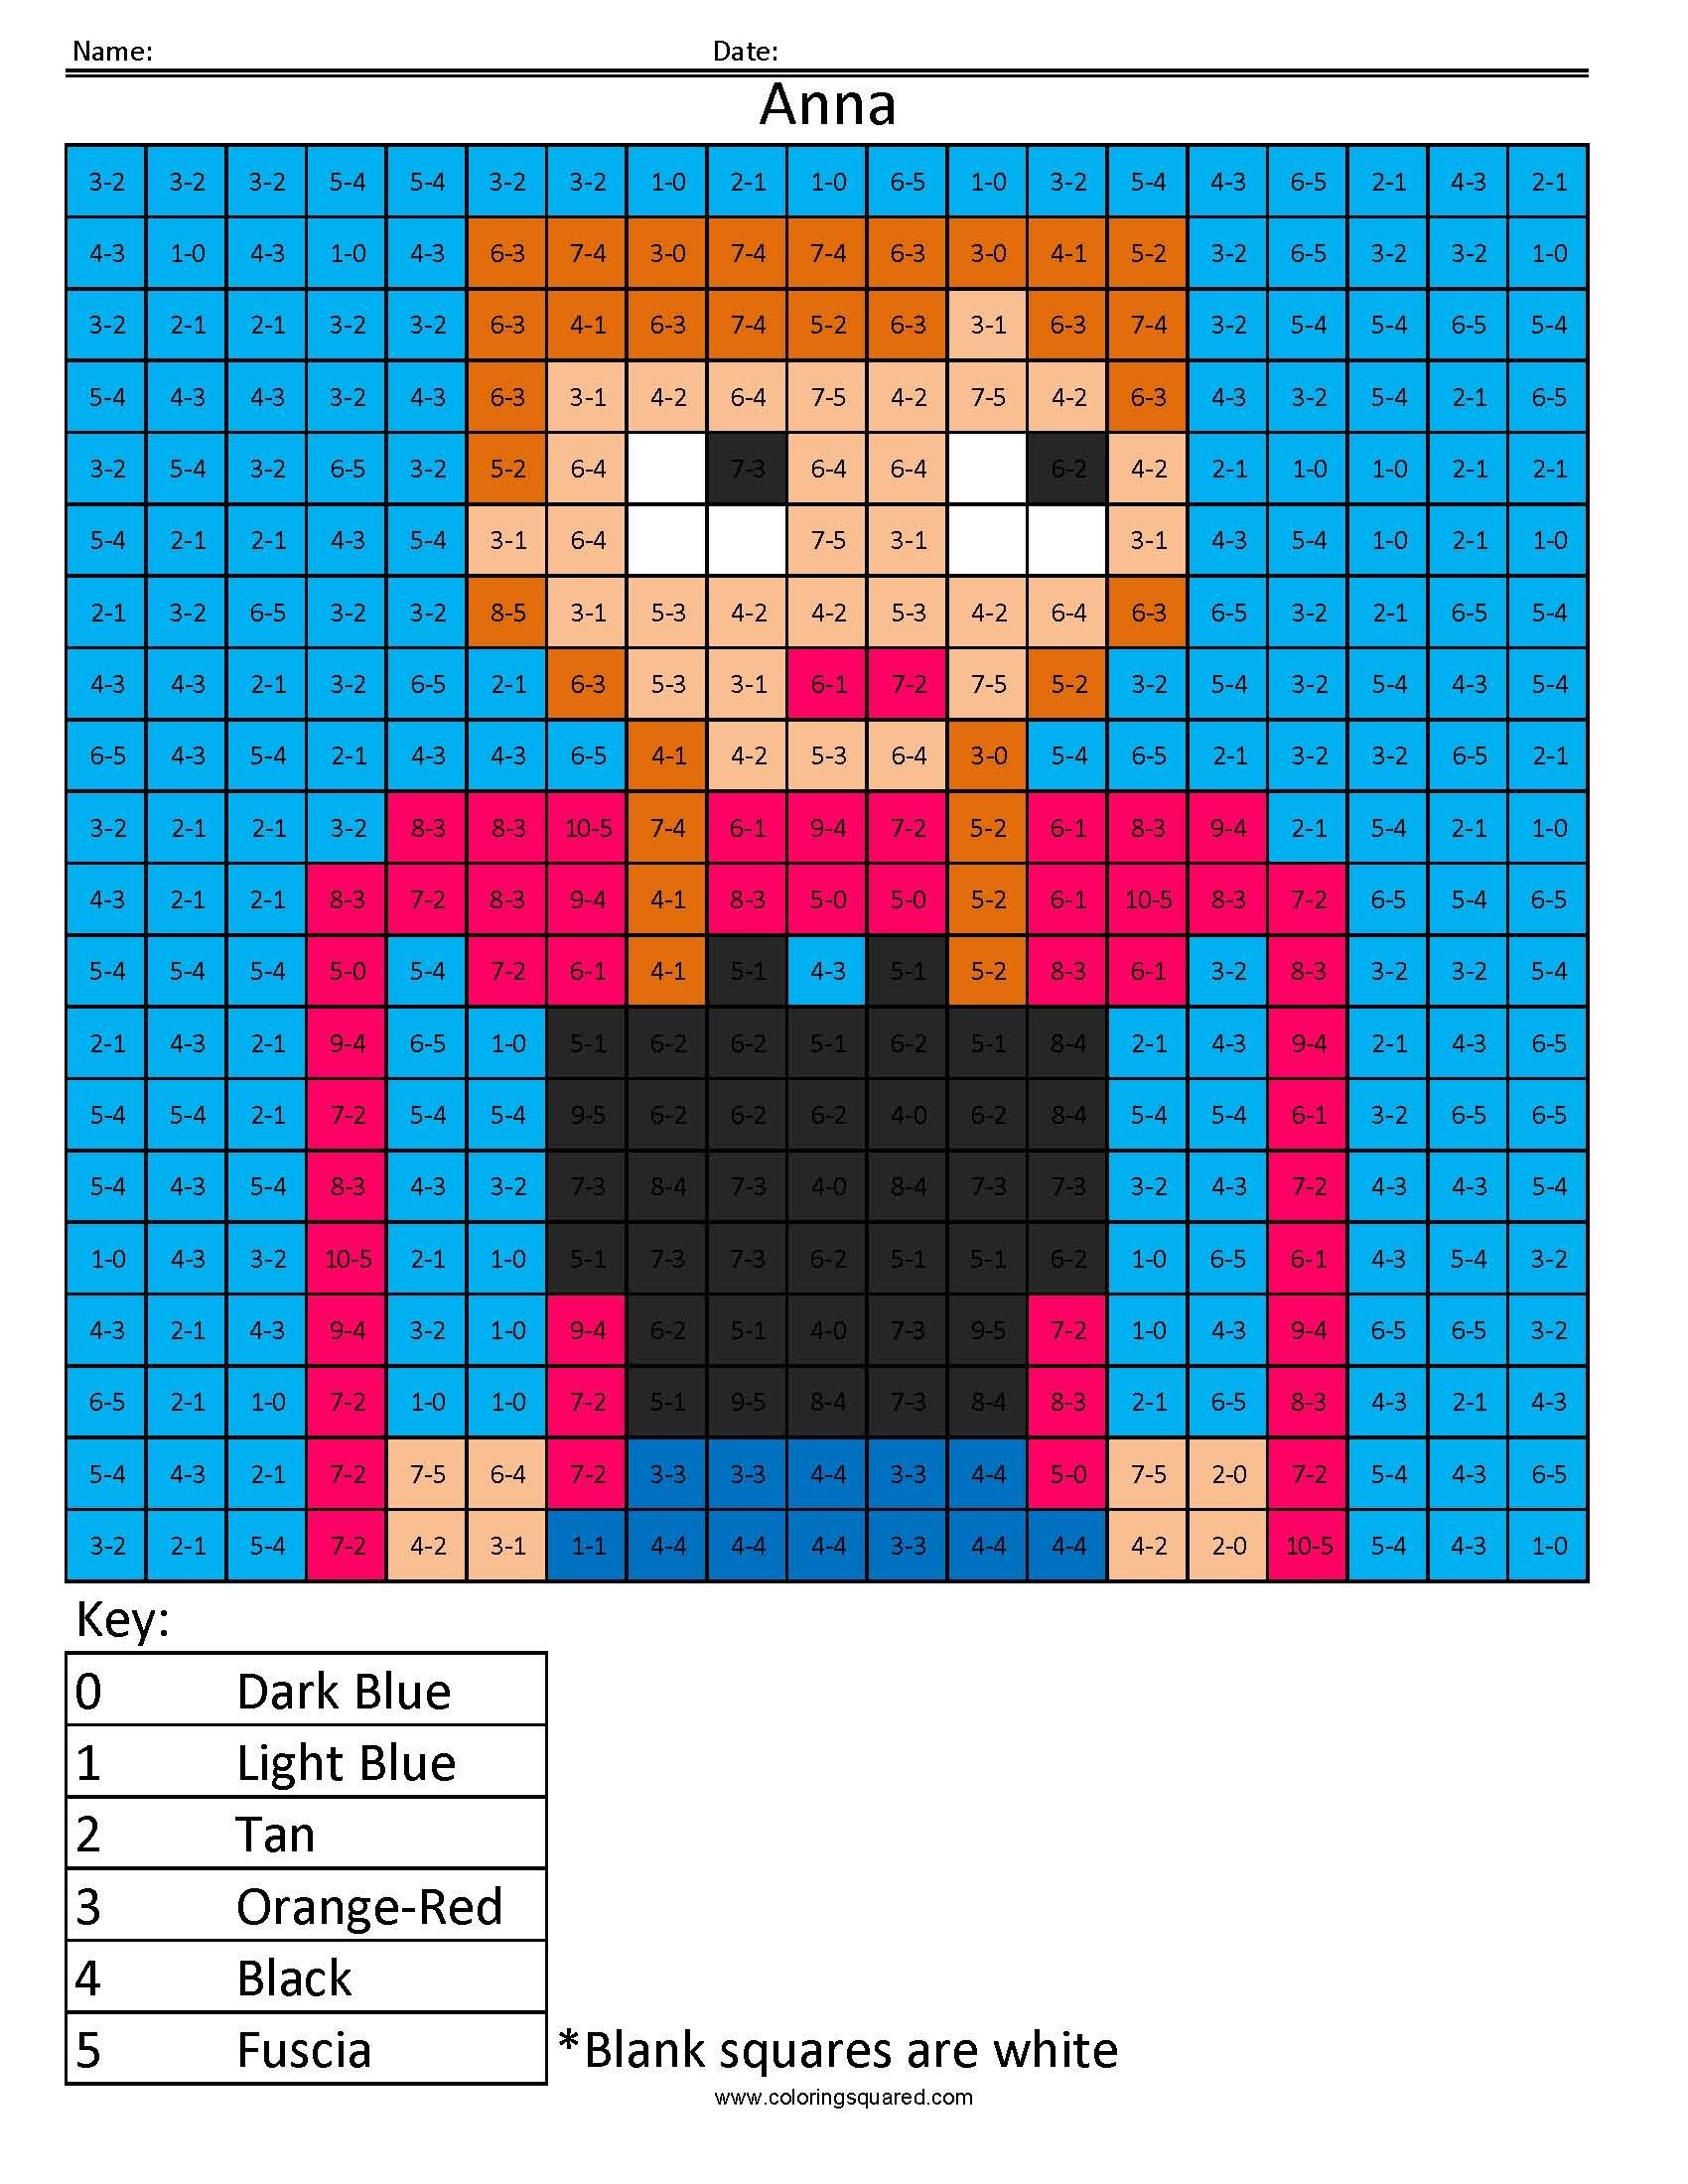 Coloring pages using addition - We Have A Ton Of Amazing Disney Princess Coloring Pages For You To Check Out Here Learn Addition And Subtraction Math Facts With These Fun Pixel Puzzles